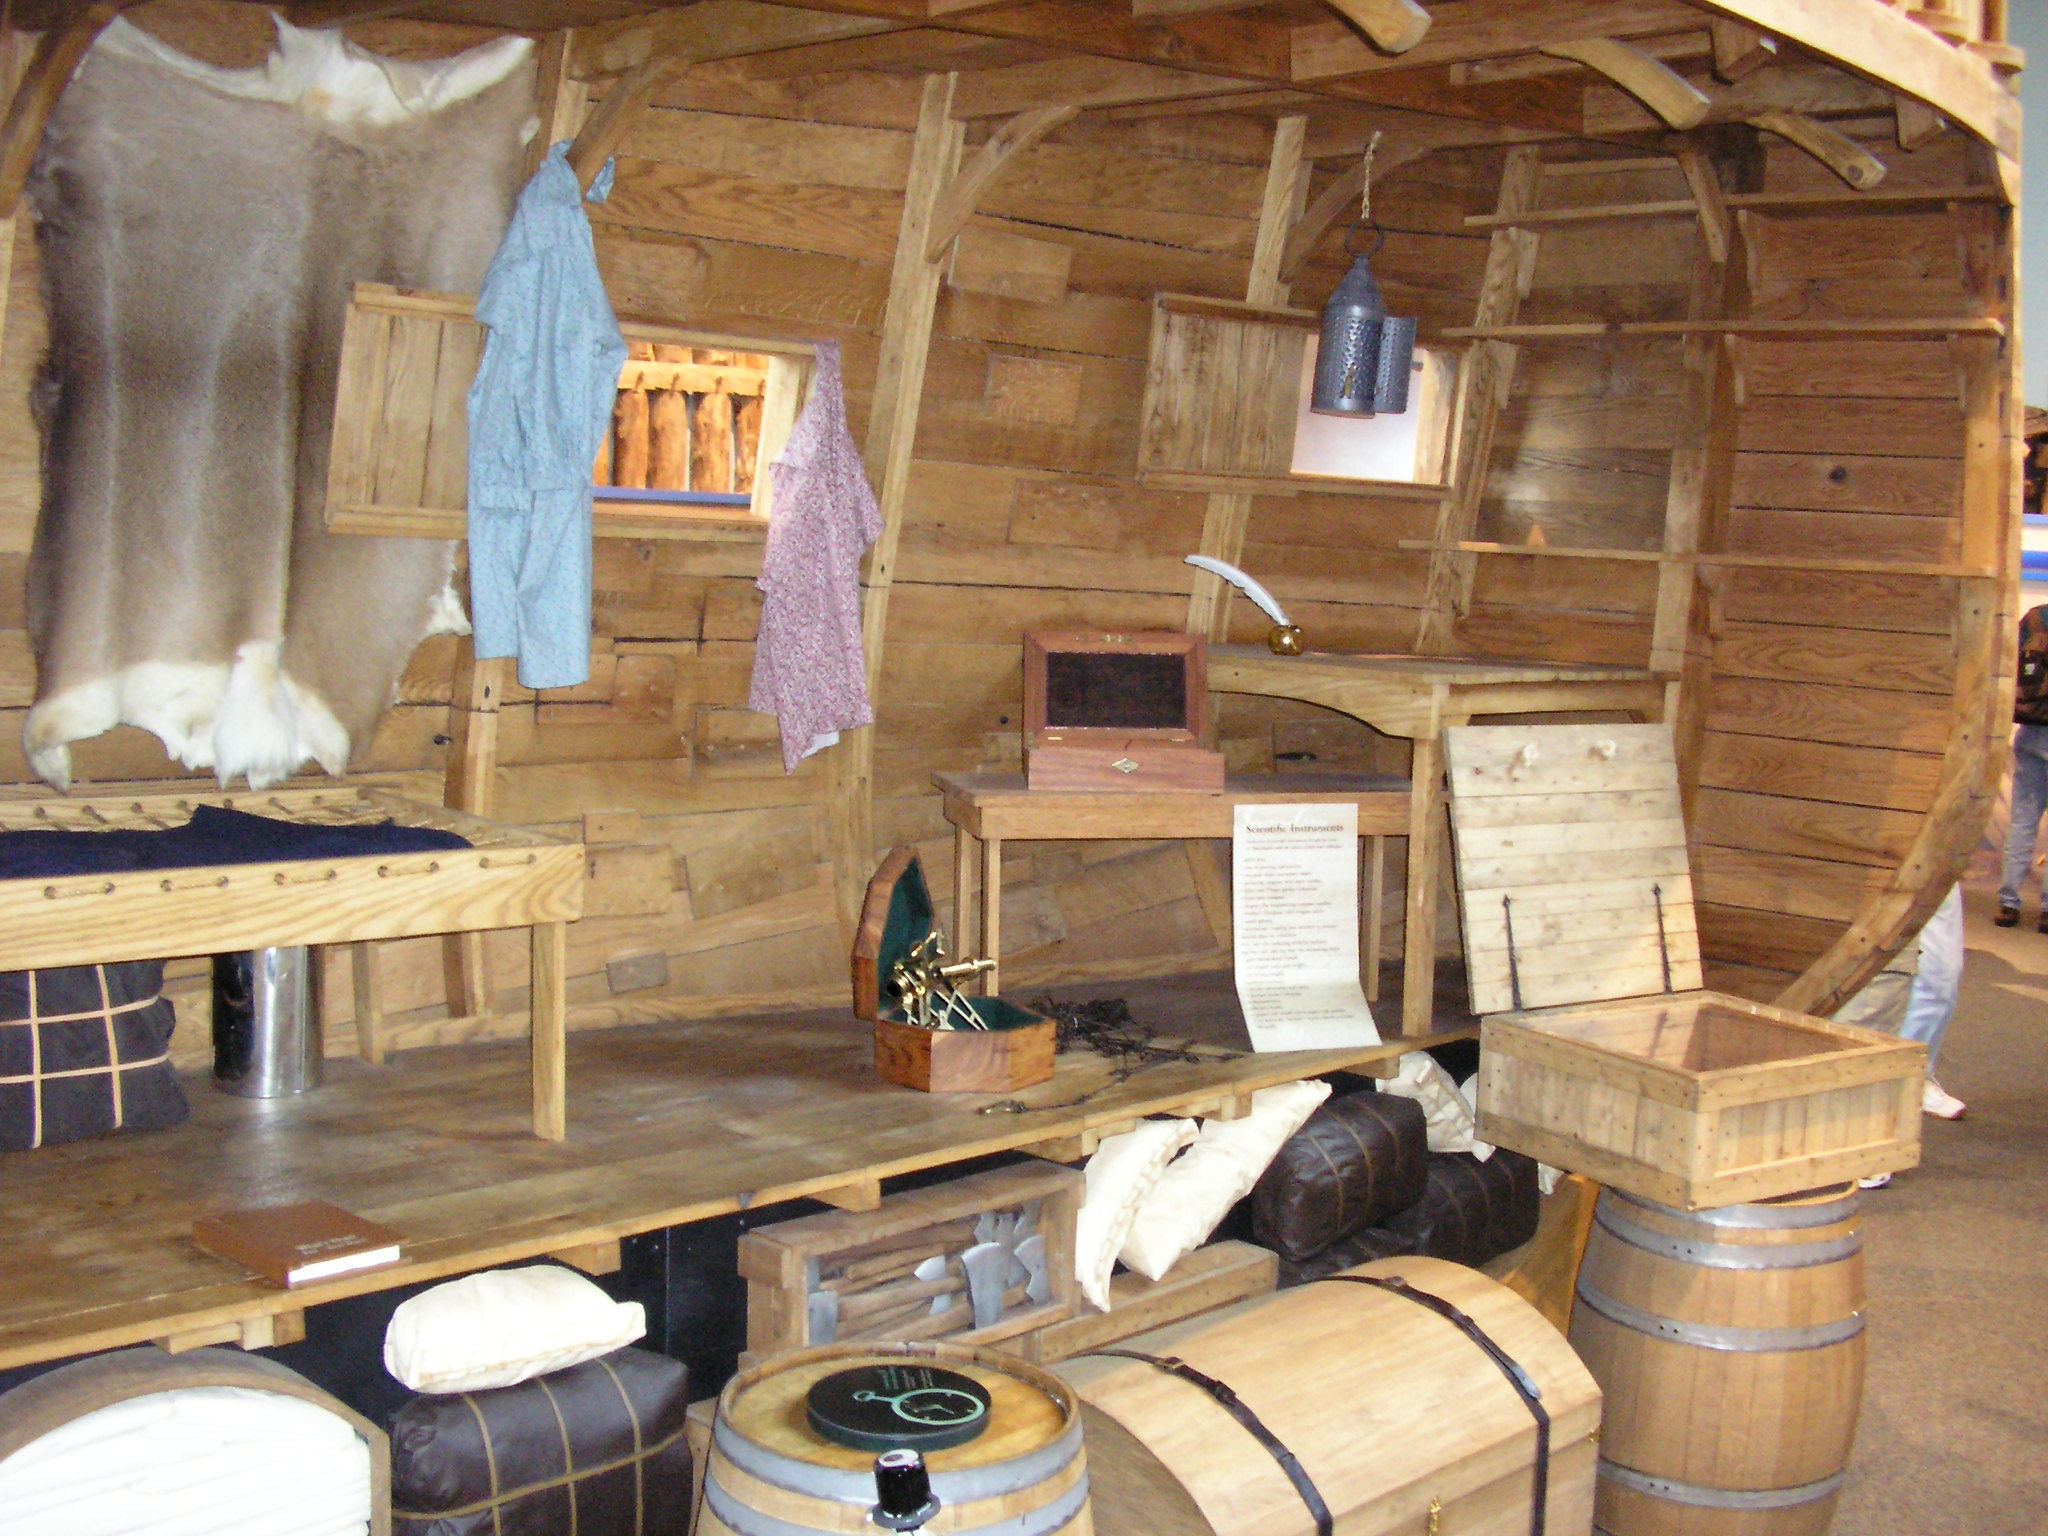 A Photographic Essay On Lewis And Clarks Keelboat  Lewis And Clark  Photo Interior Cutaway View Of The Keelboats Cabin Looking Toward The  Stern Note The